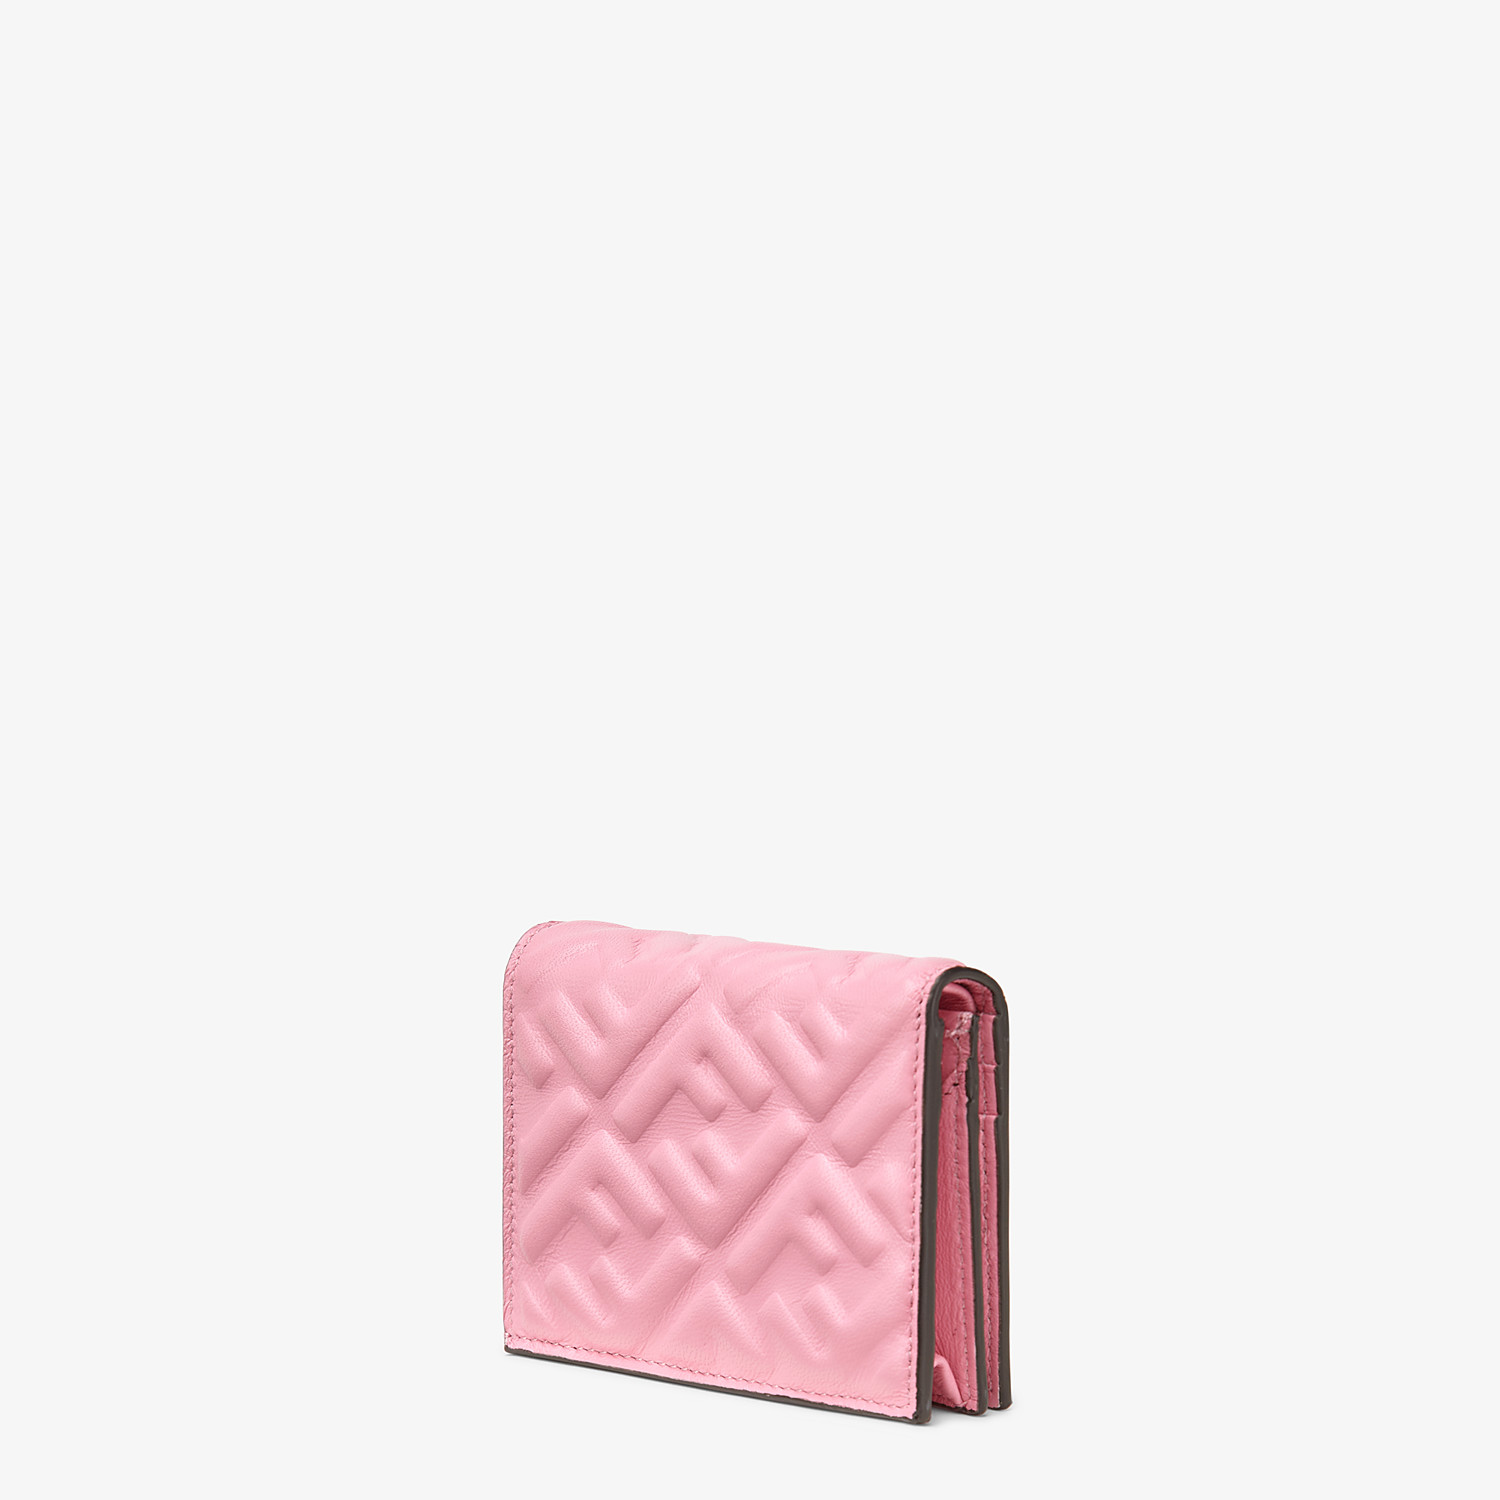 FENDI SMALL WALLET - Pink nappa leather wallet - view 2 detail